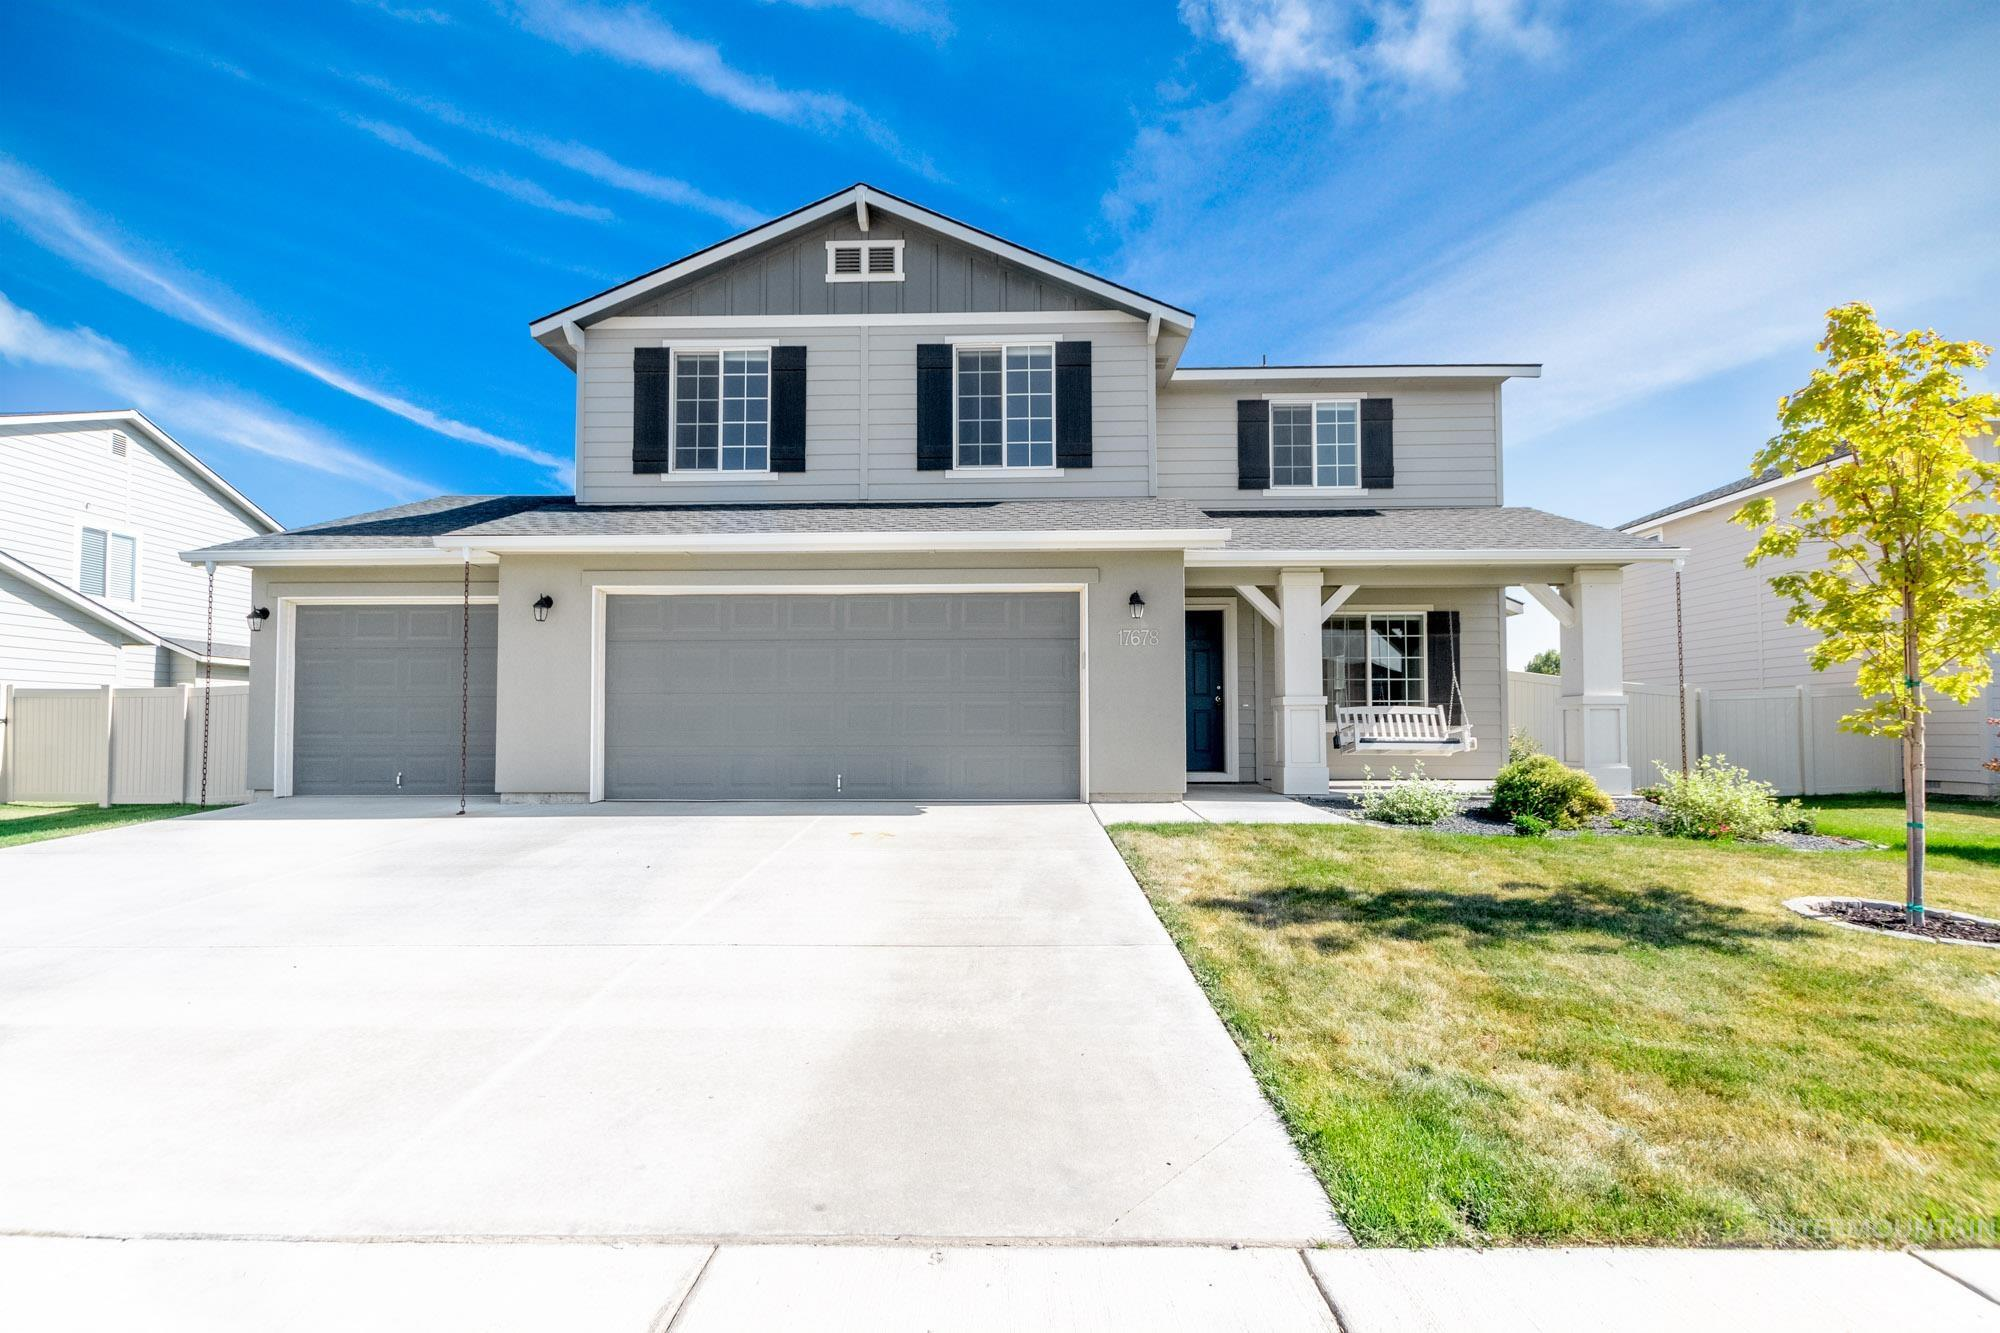 Photo of 17678 Newdale Ave Nampa ID 83687